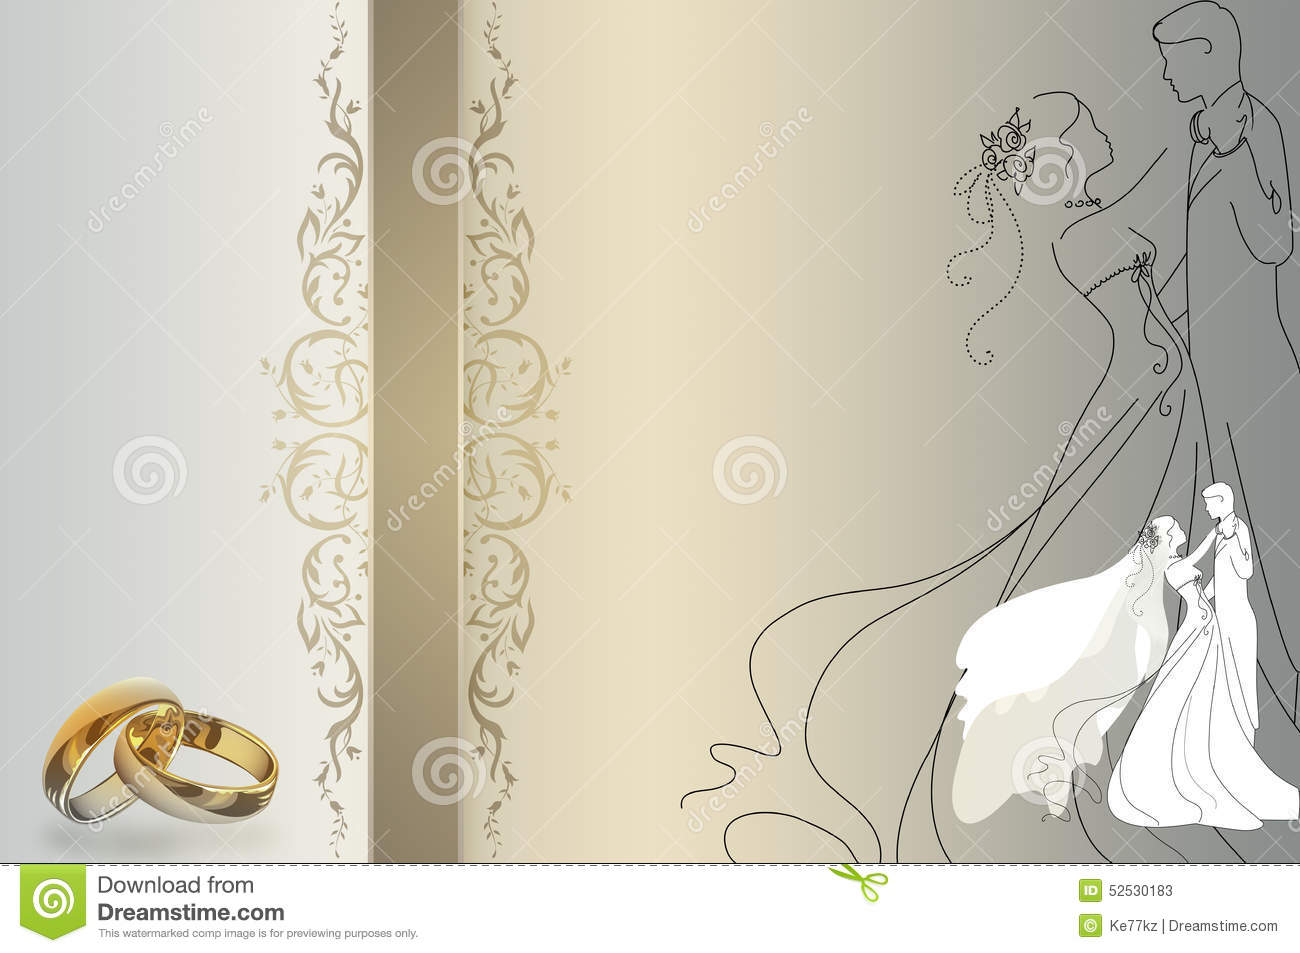 Background Pictures For Wedding Invitations: Wedding Invitation Template. Stock Illustration